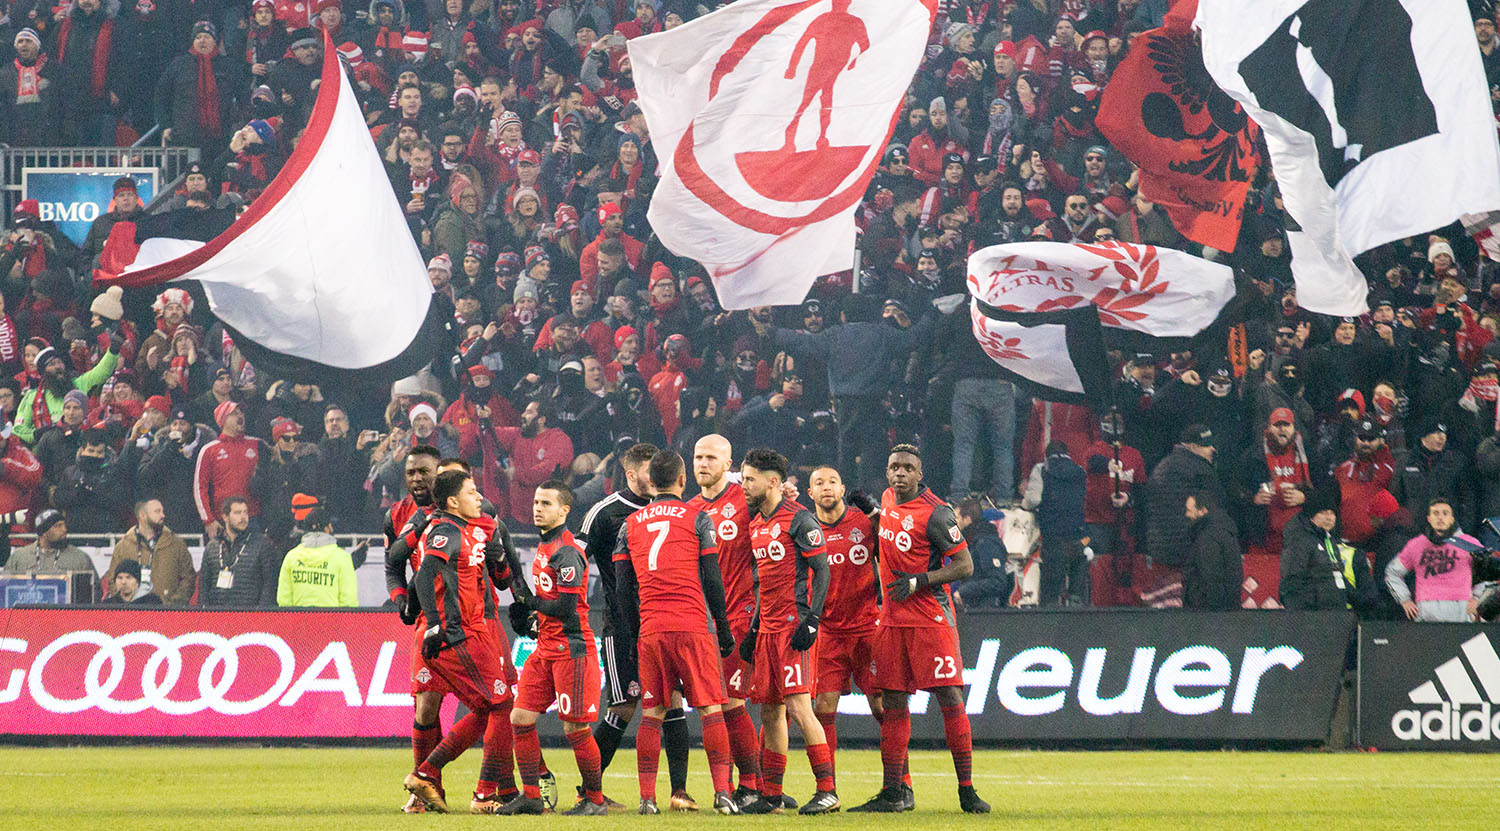 Toronto FC's starting XI breaking away seconds away from kickoff during the 2017 MLS Cup playoffs against Seattle.Image by Dennis Marciniak of denMAR Media.